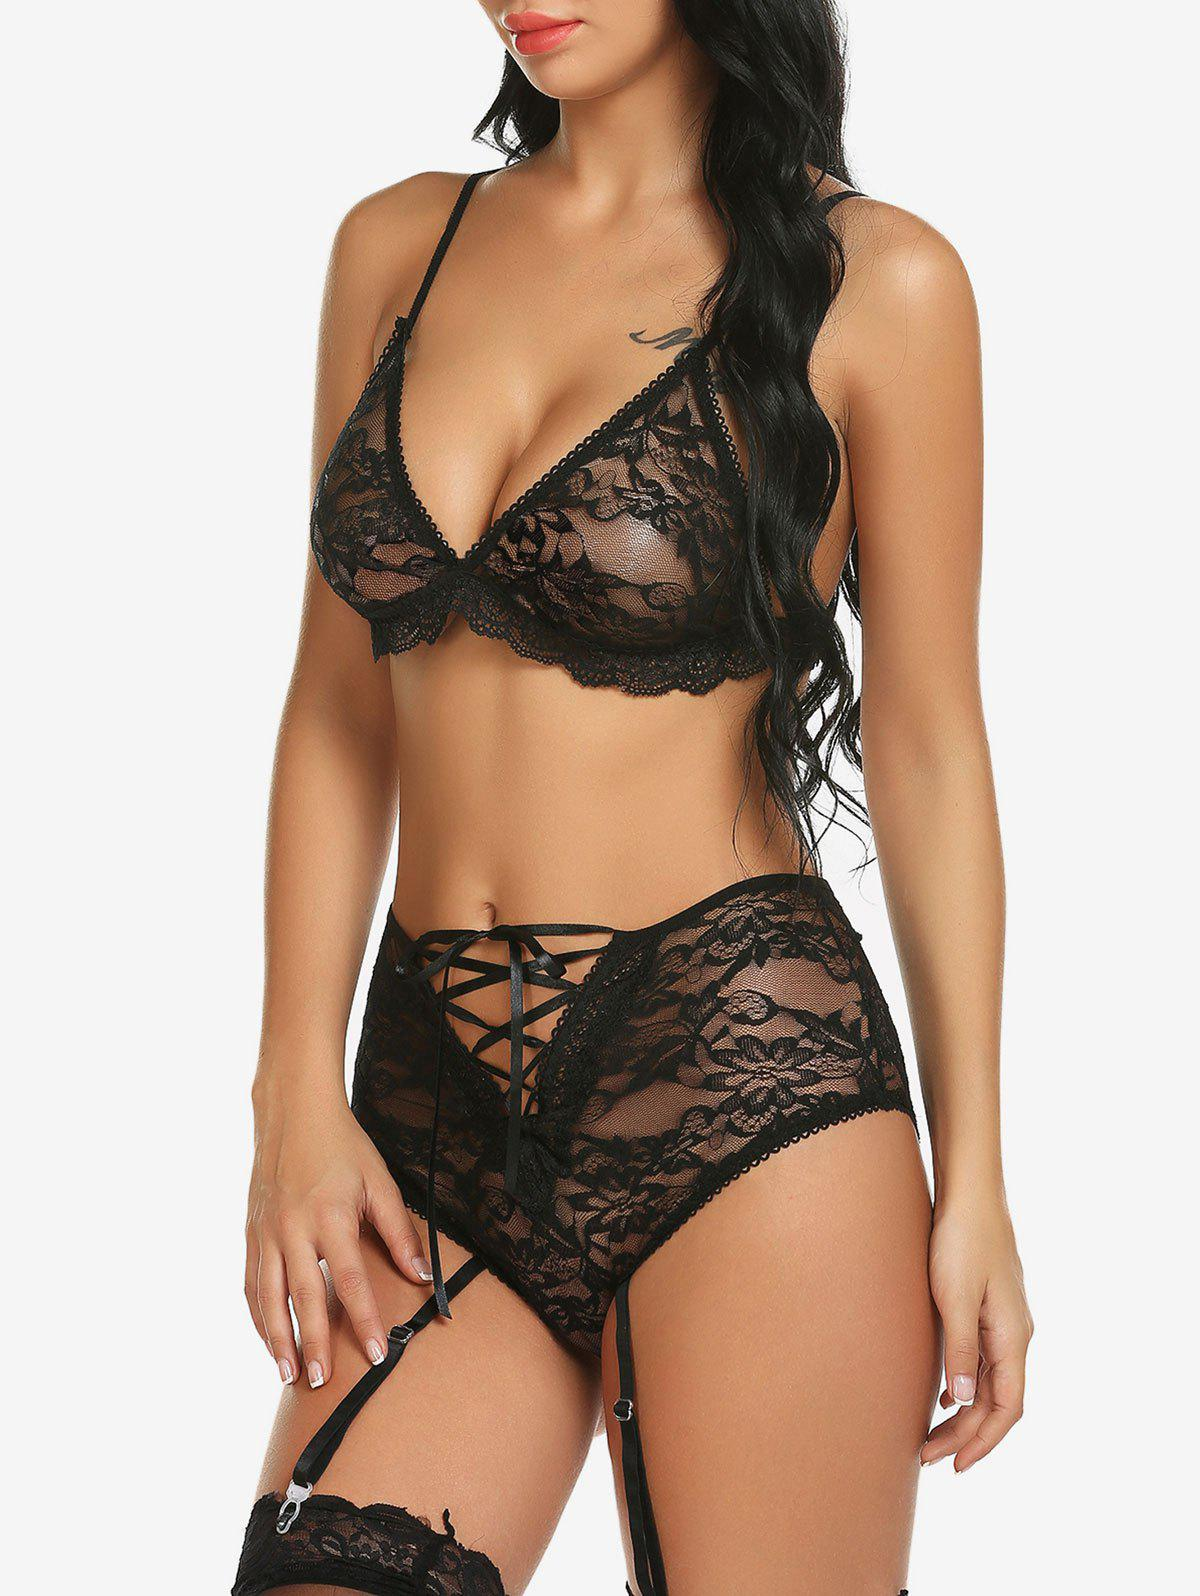 Fashion See Through Lace Garter Bra Set